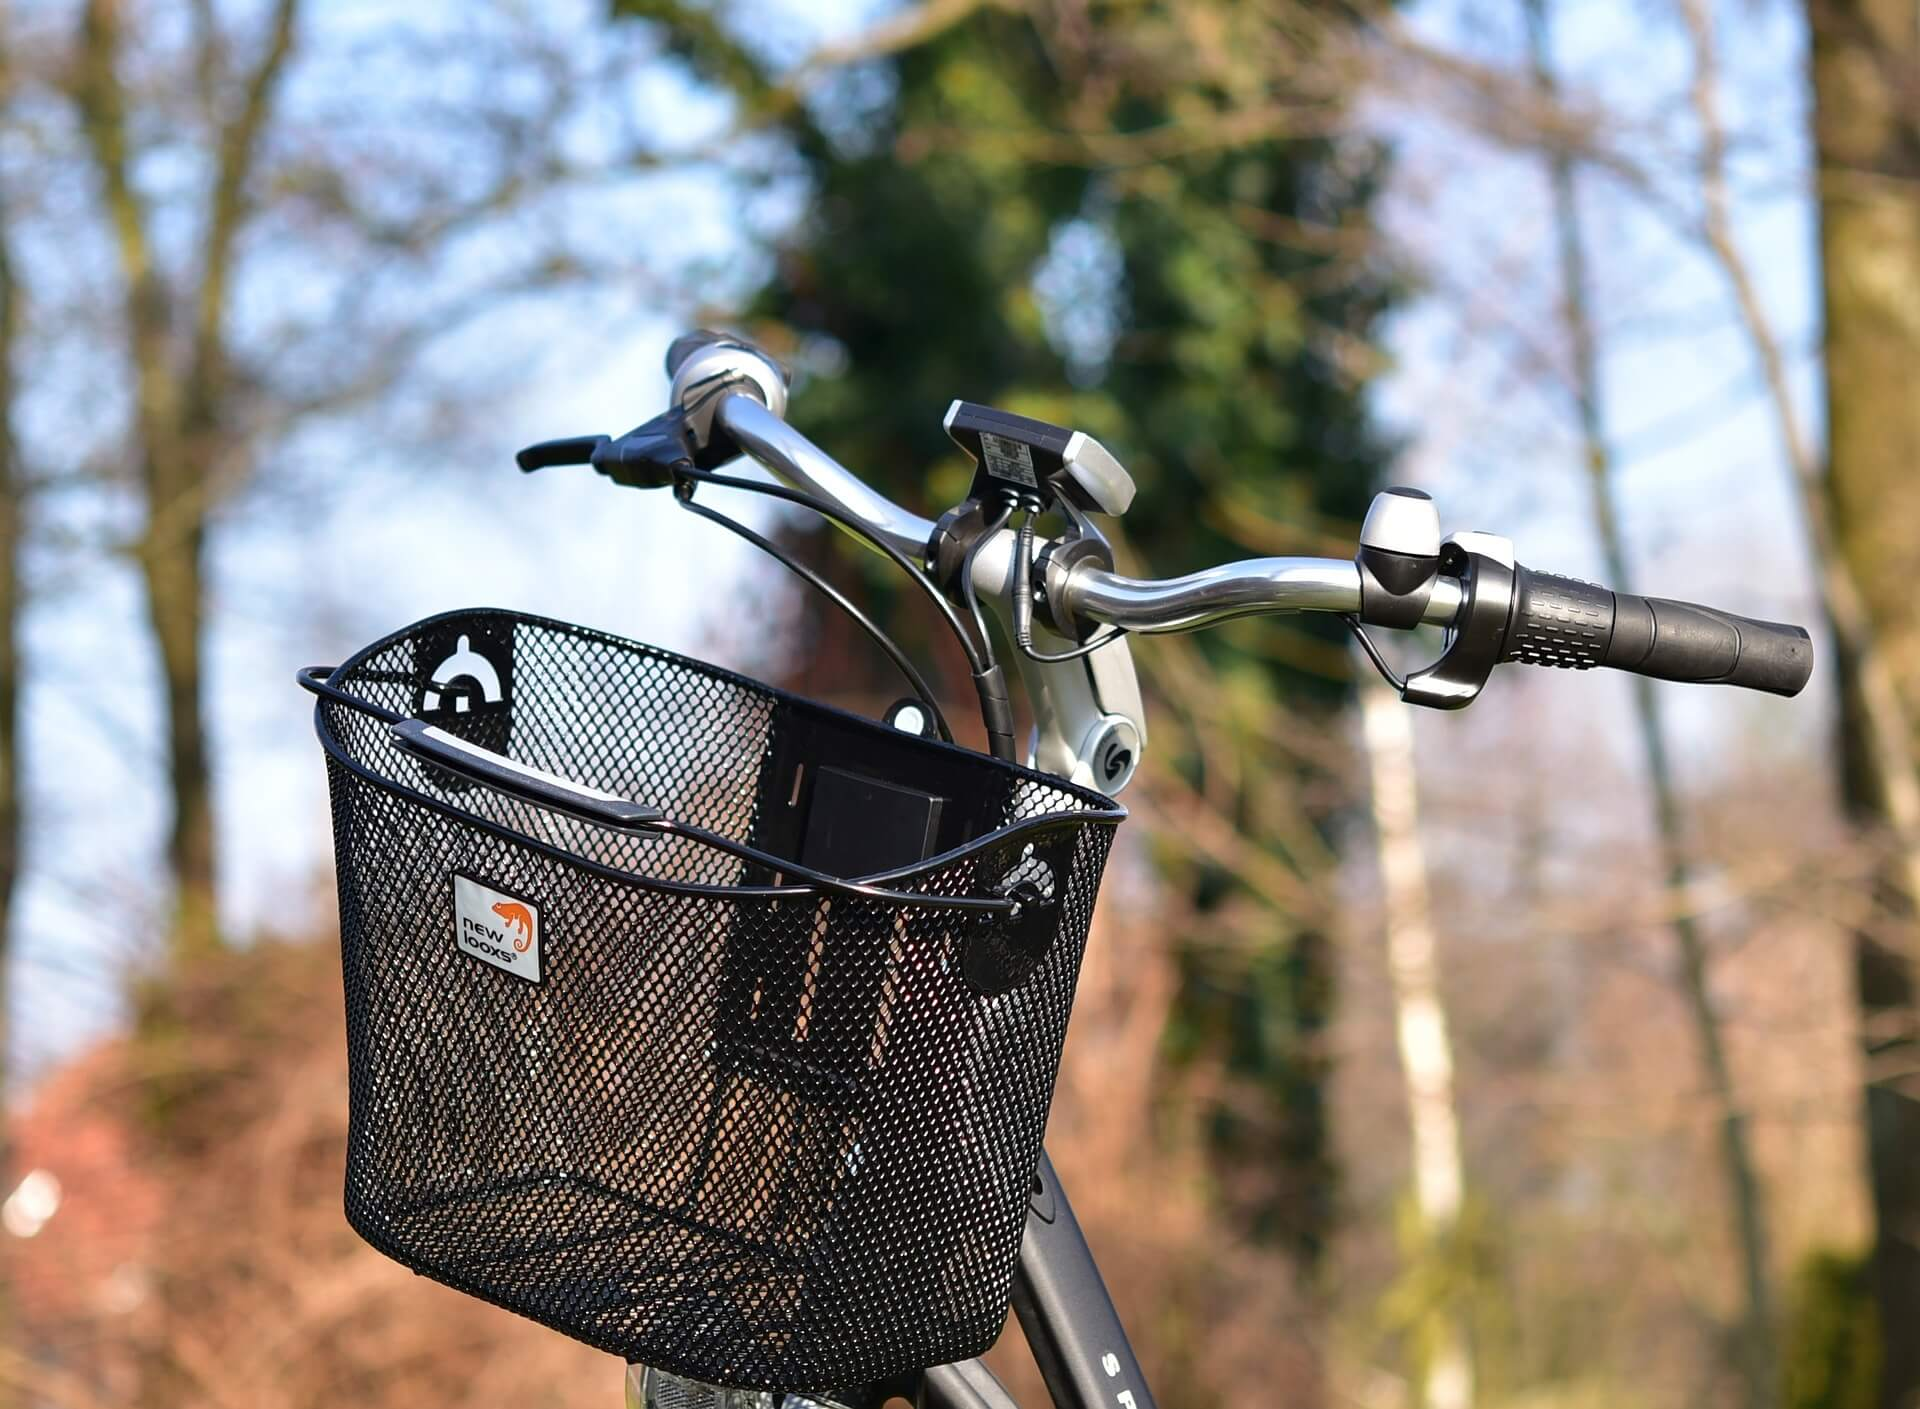 what is the best bike to e-bike conversion kit?